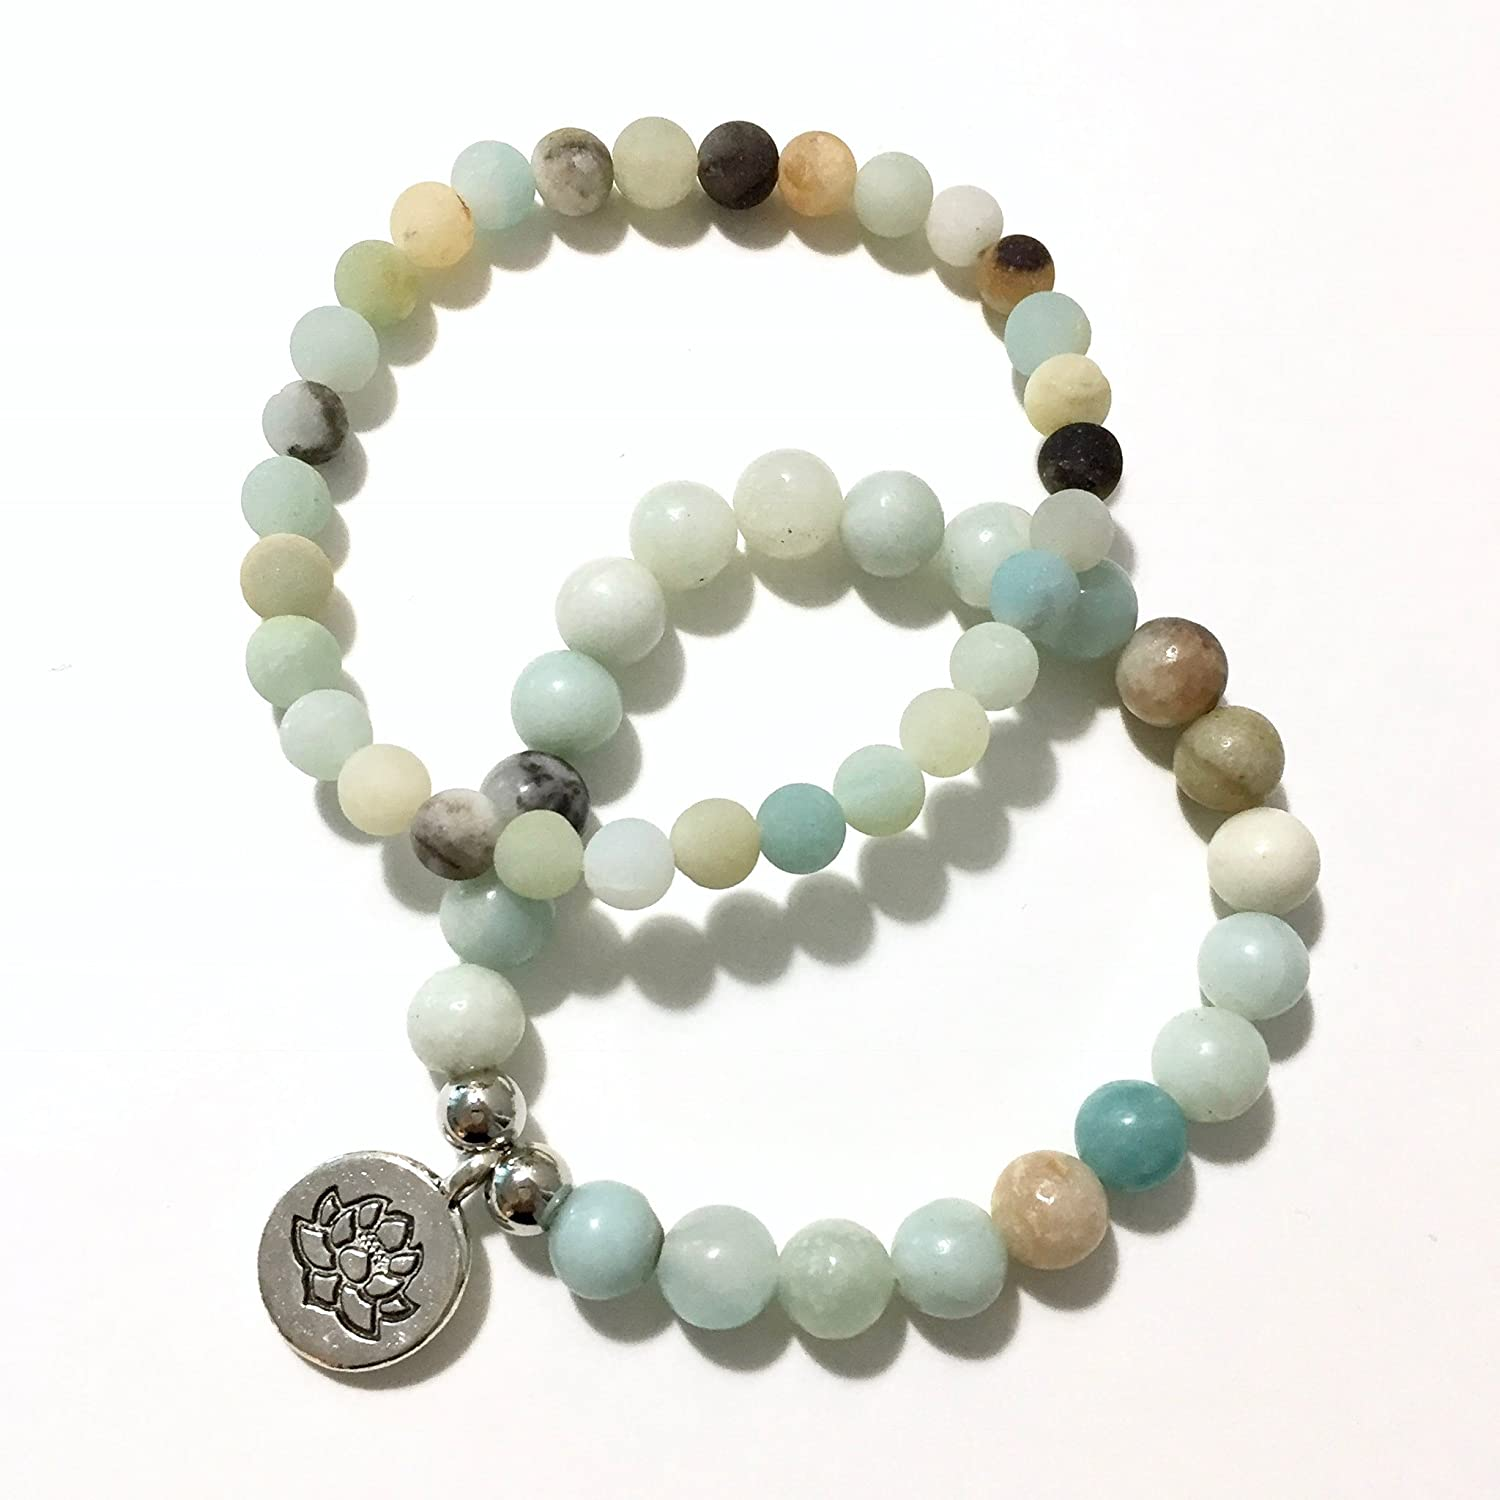 Set of 2 Amazonite and Silver Mala Bracelets with Lotus Flower Charm